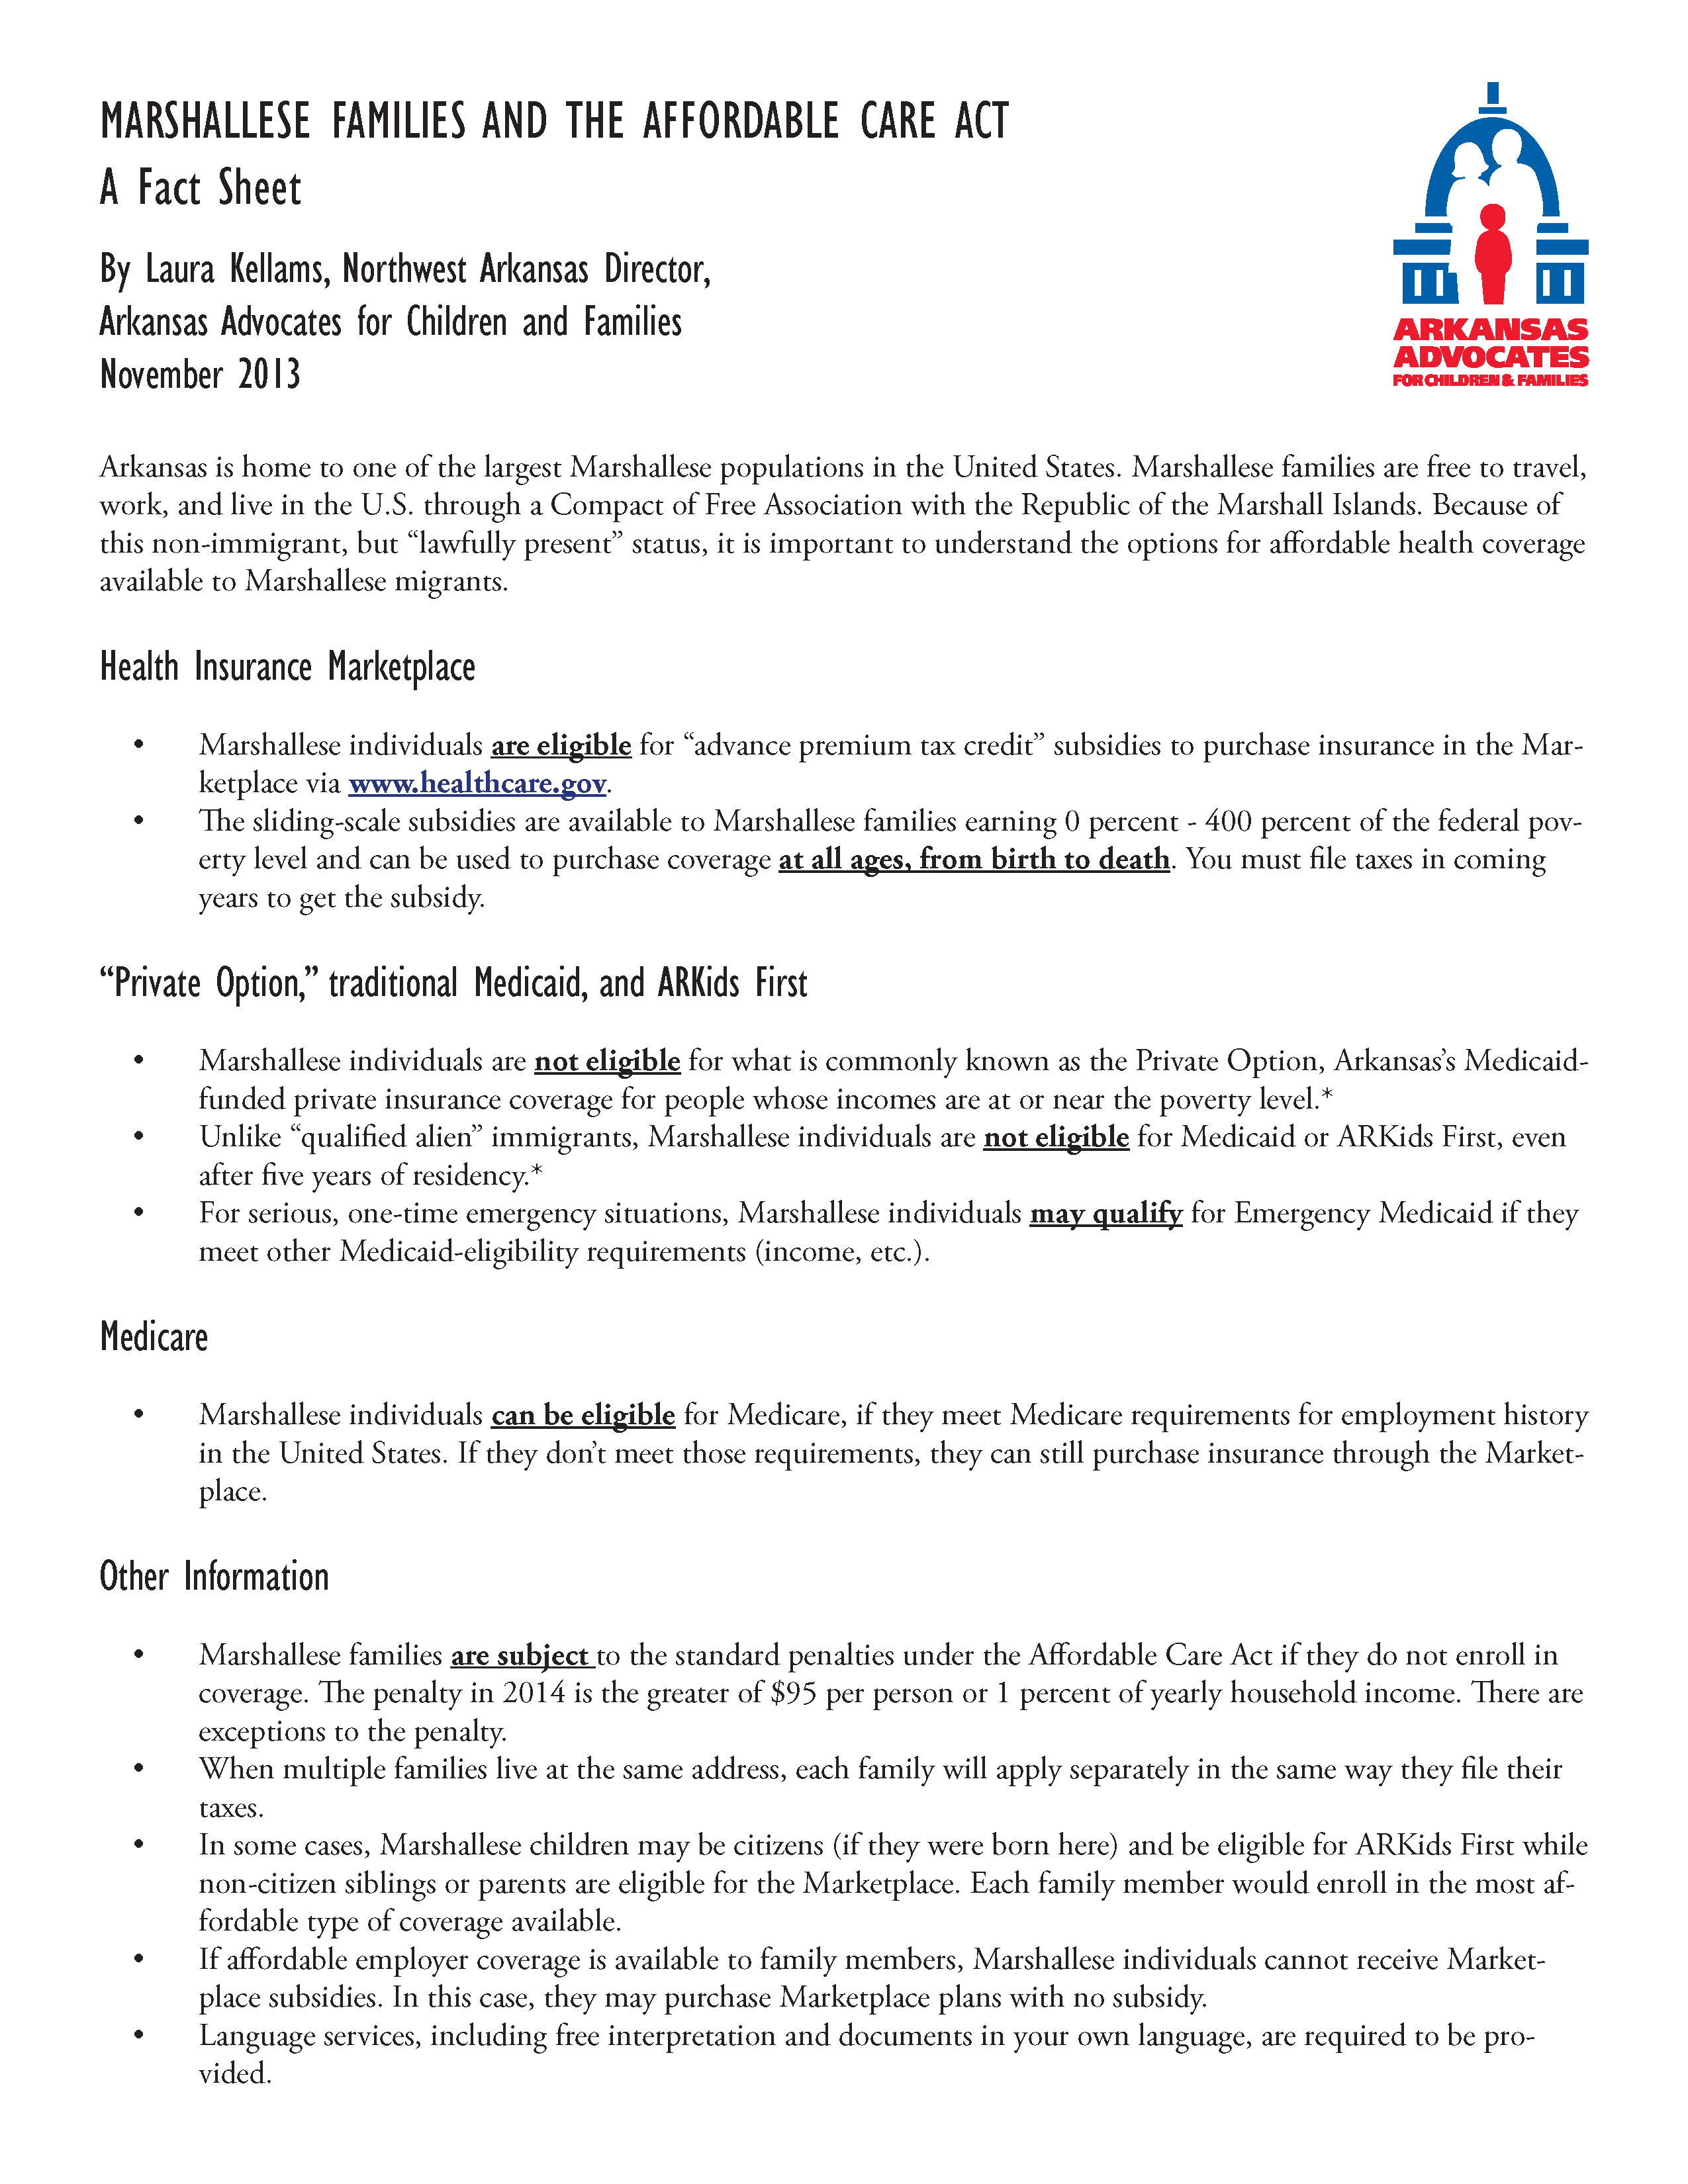 Fact Sheet: Marshallese Families And The Affordable Care Act Arkansas  Advocates For Children And Families (aacf)